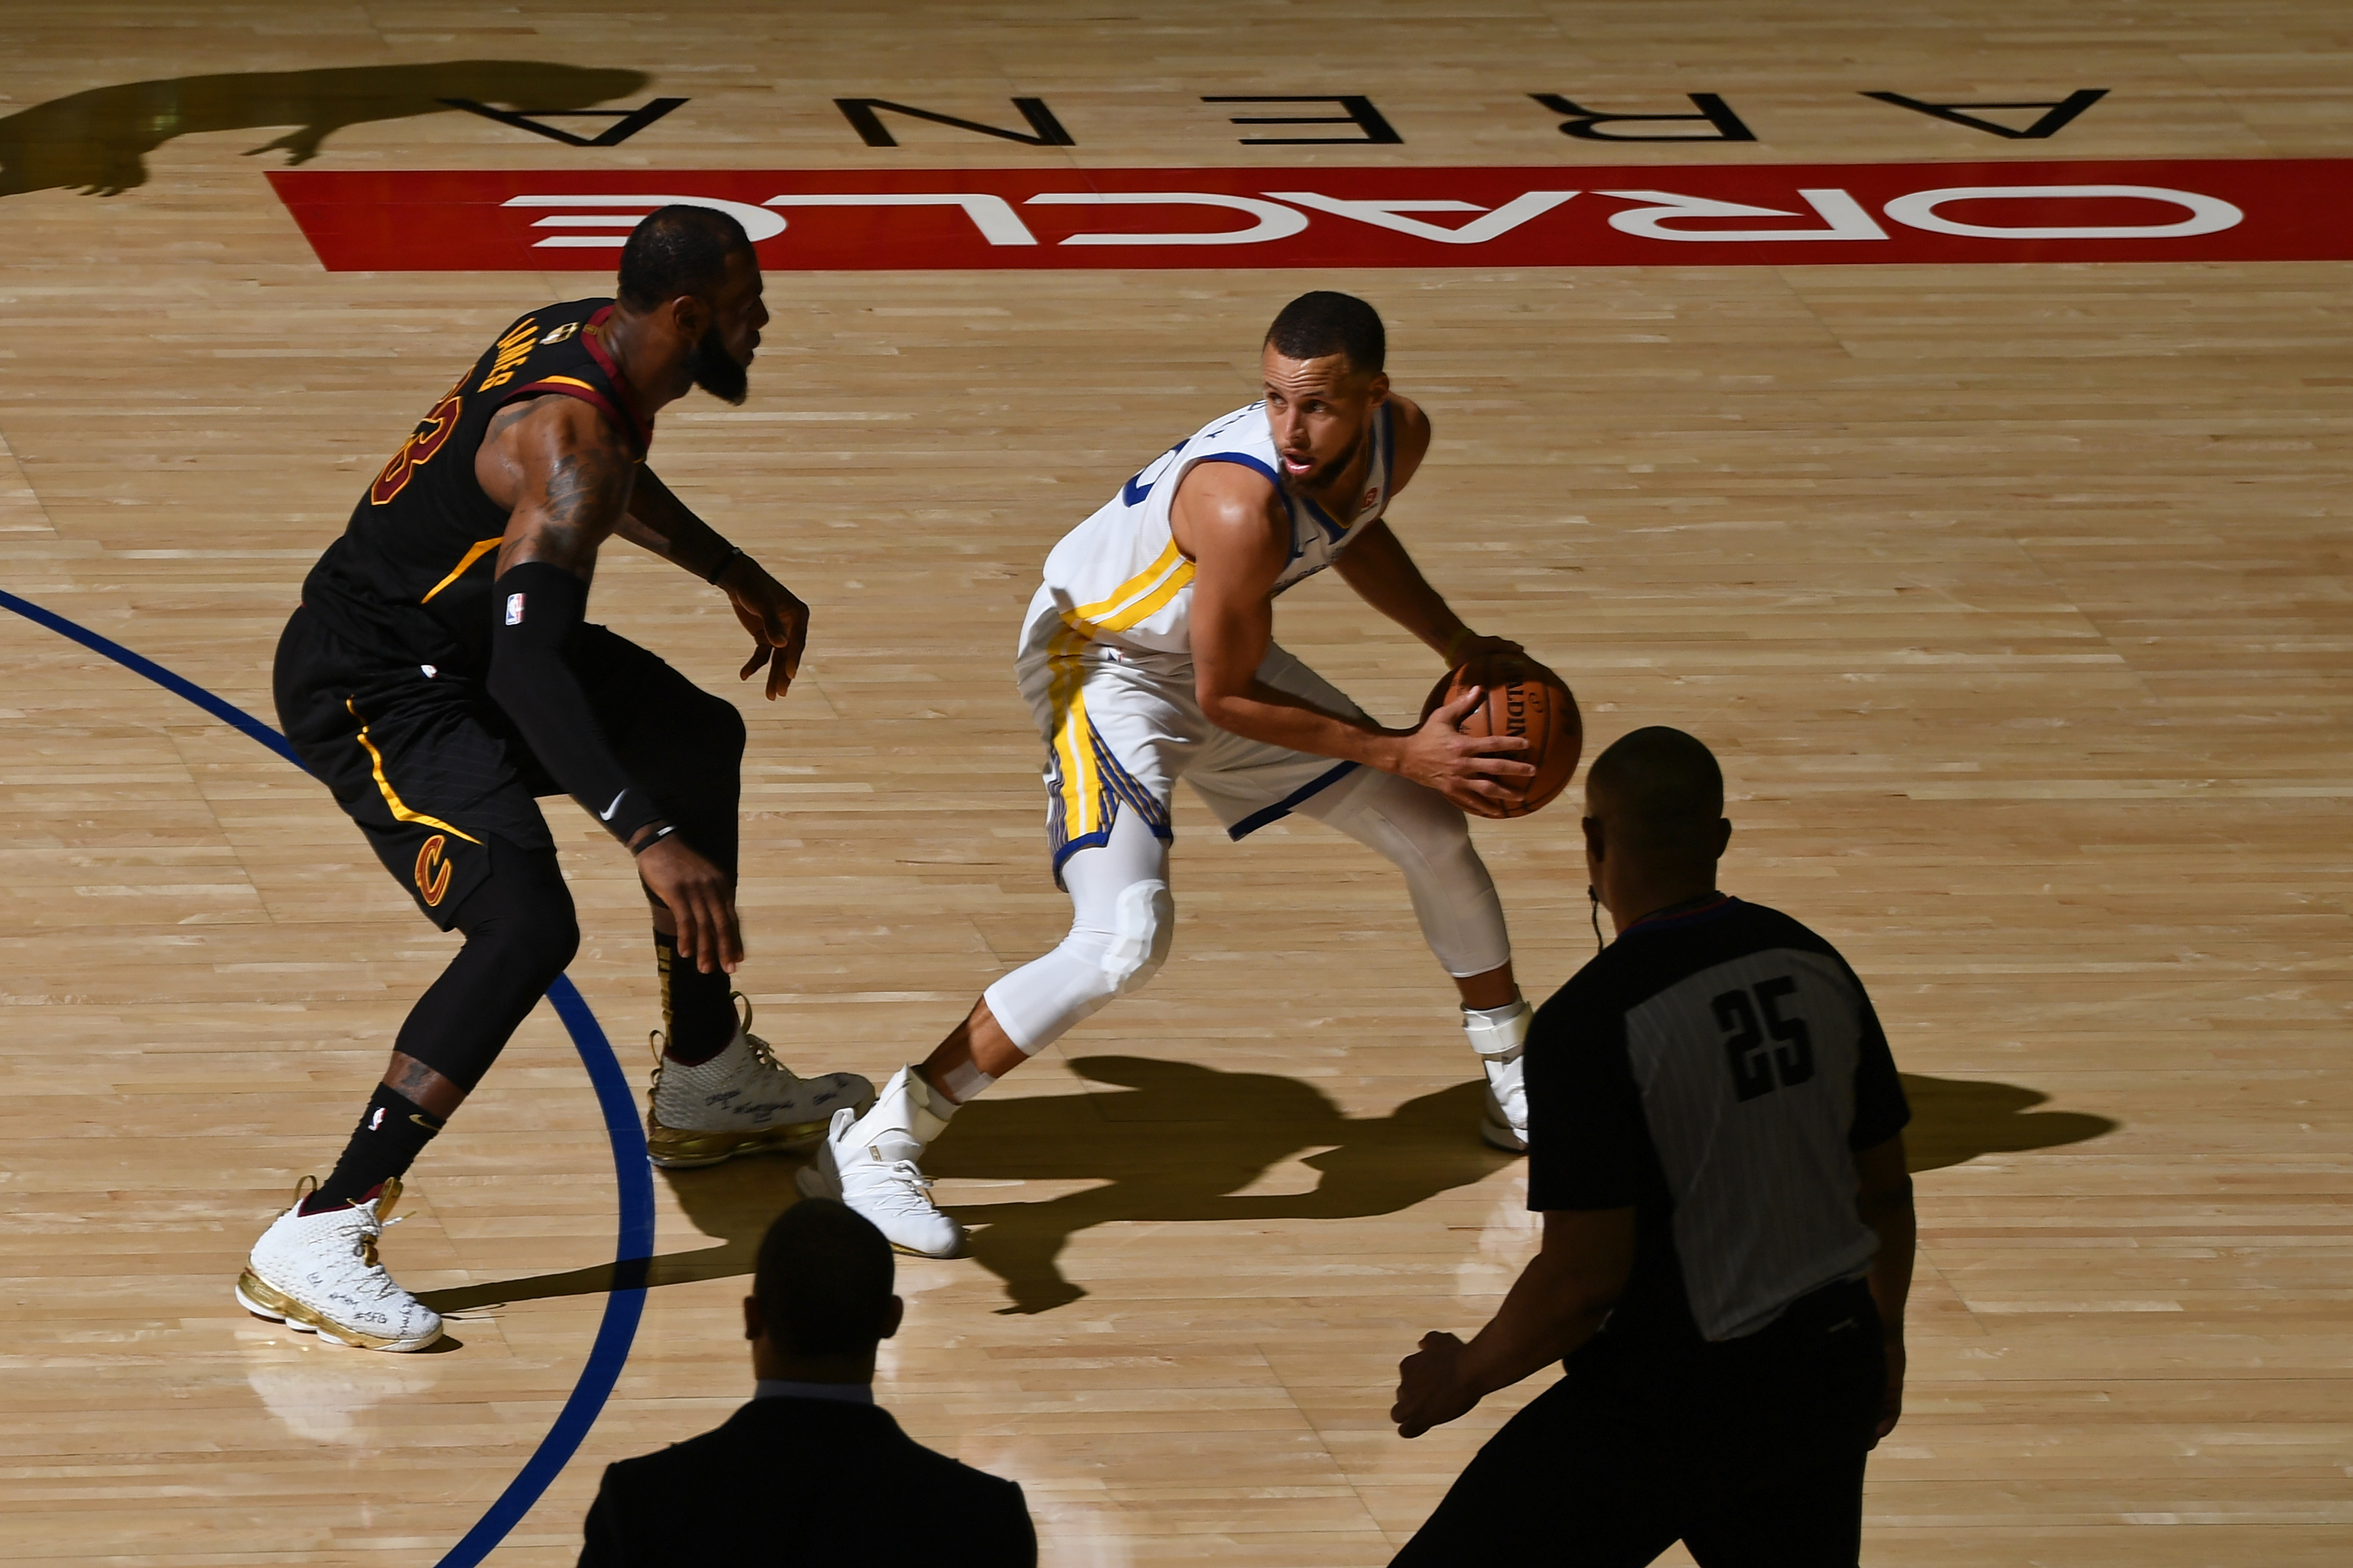 Cavaliers-Warriors Game 1 Ultimate Playoffs Highlight